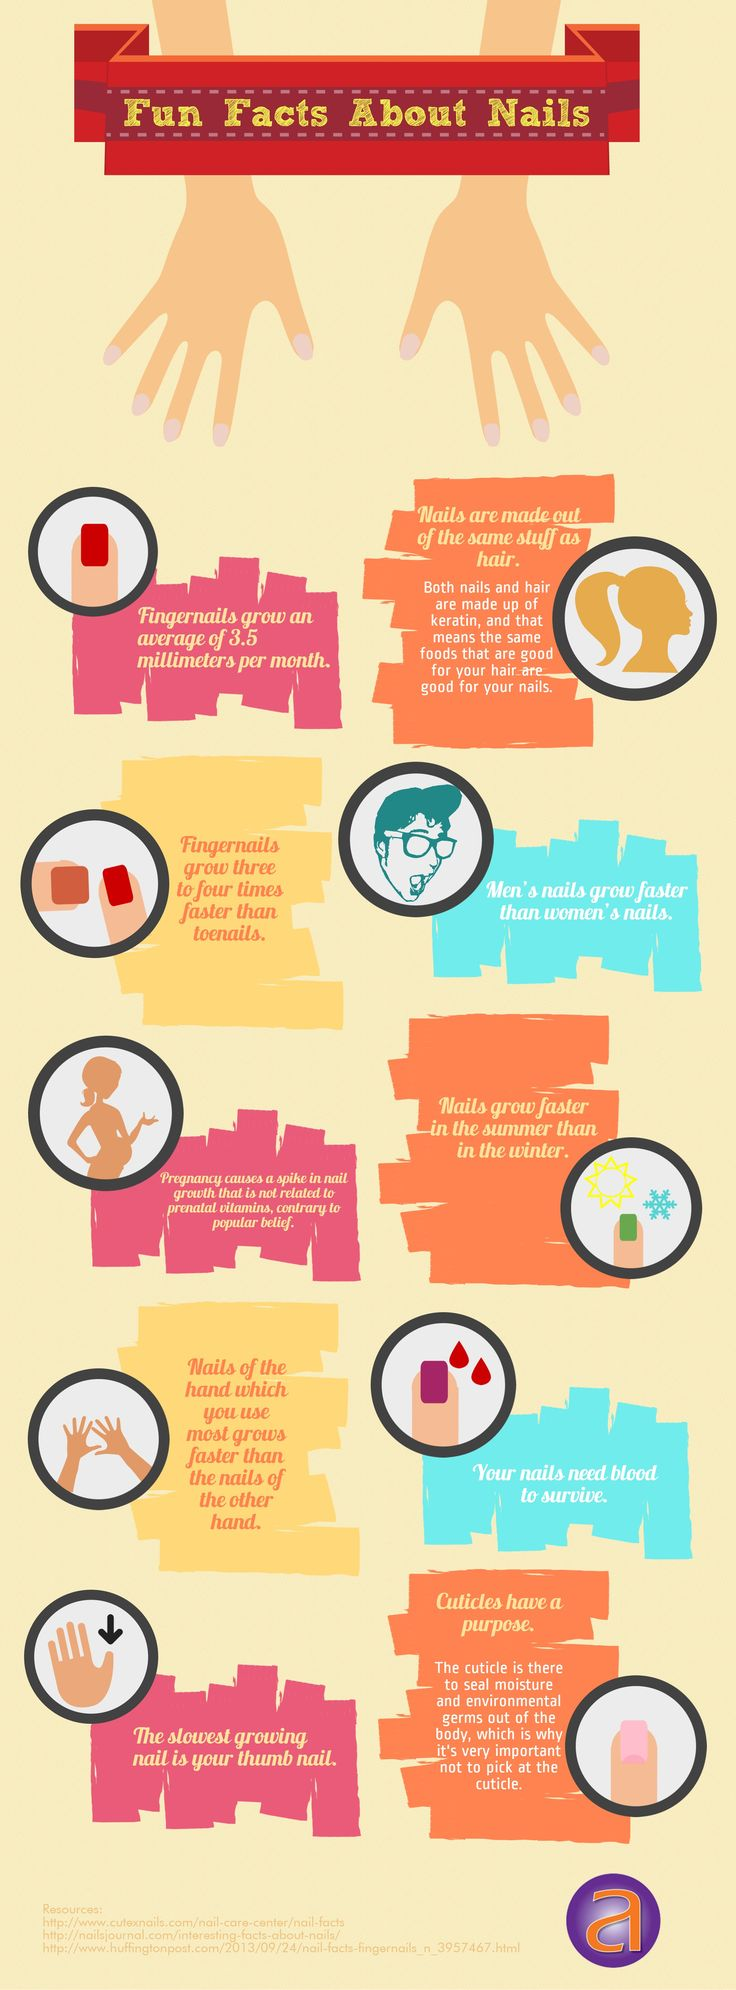 Fun Facts About Nails   #infographic #Nails #FunFacts